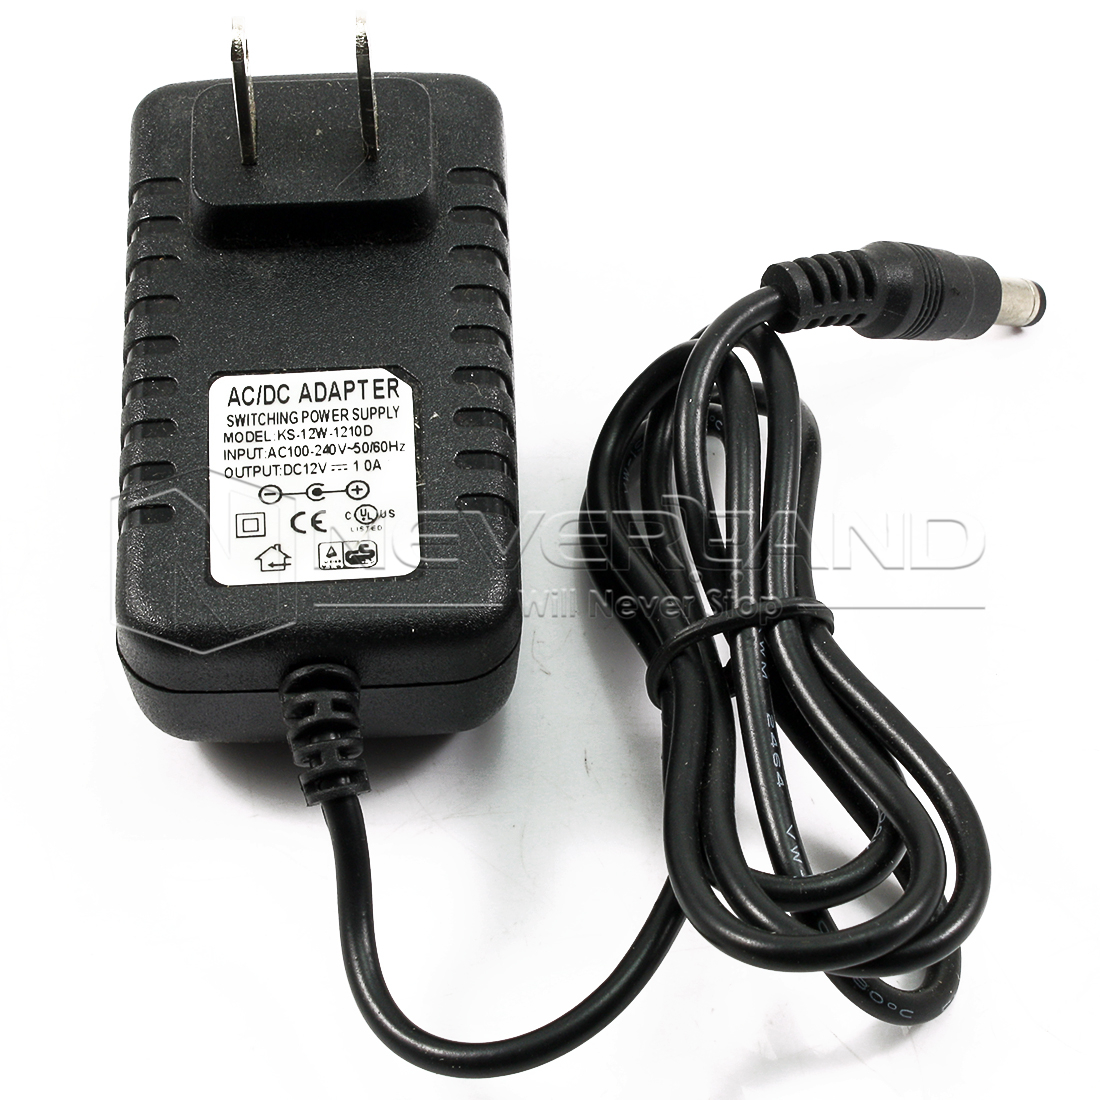 dc 12v 1a 2a power supply charger ac adapter plug fr led light strip camera cctv ebay. Black Bedroom Furniture Sets. Home Design Ideas